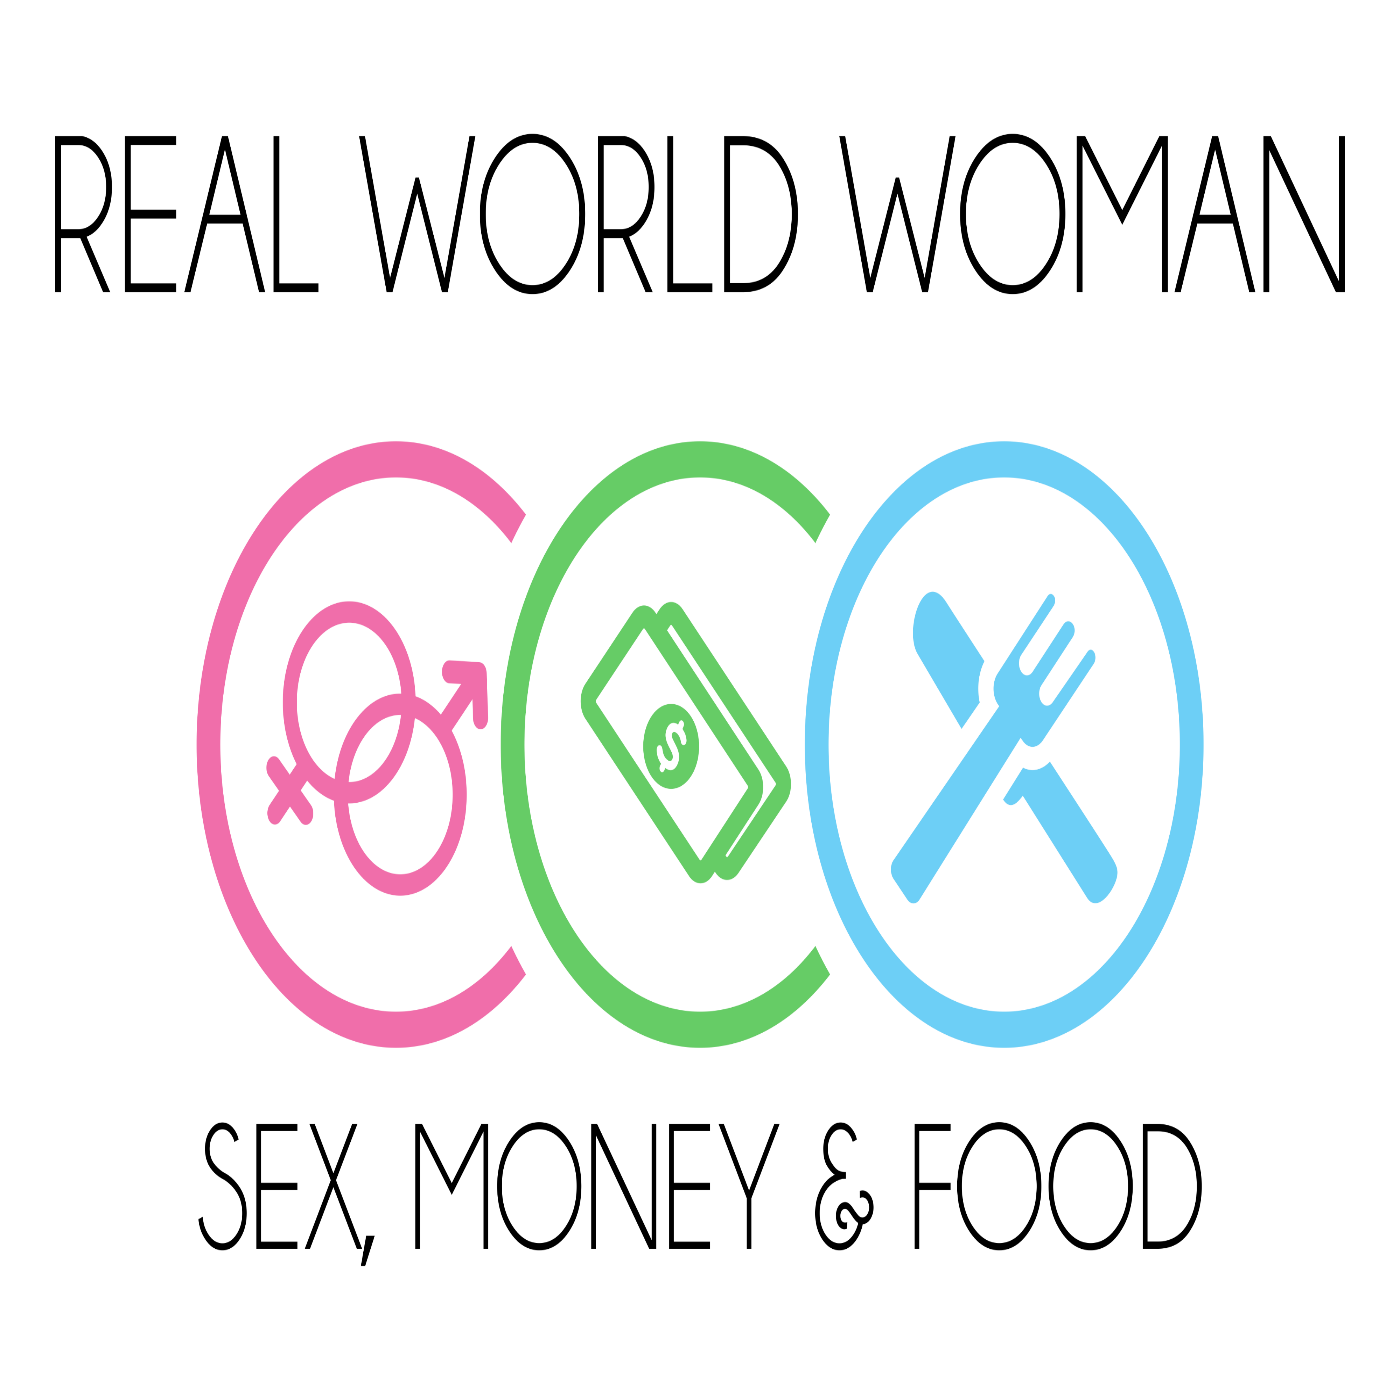 Sex, Money & Food